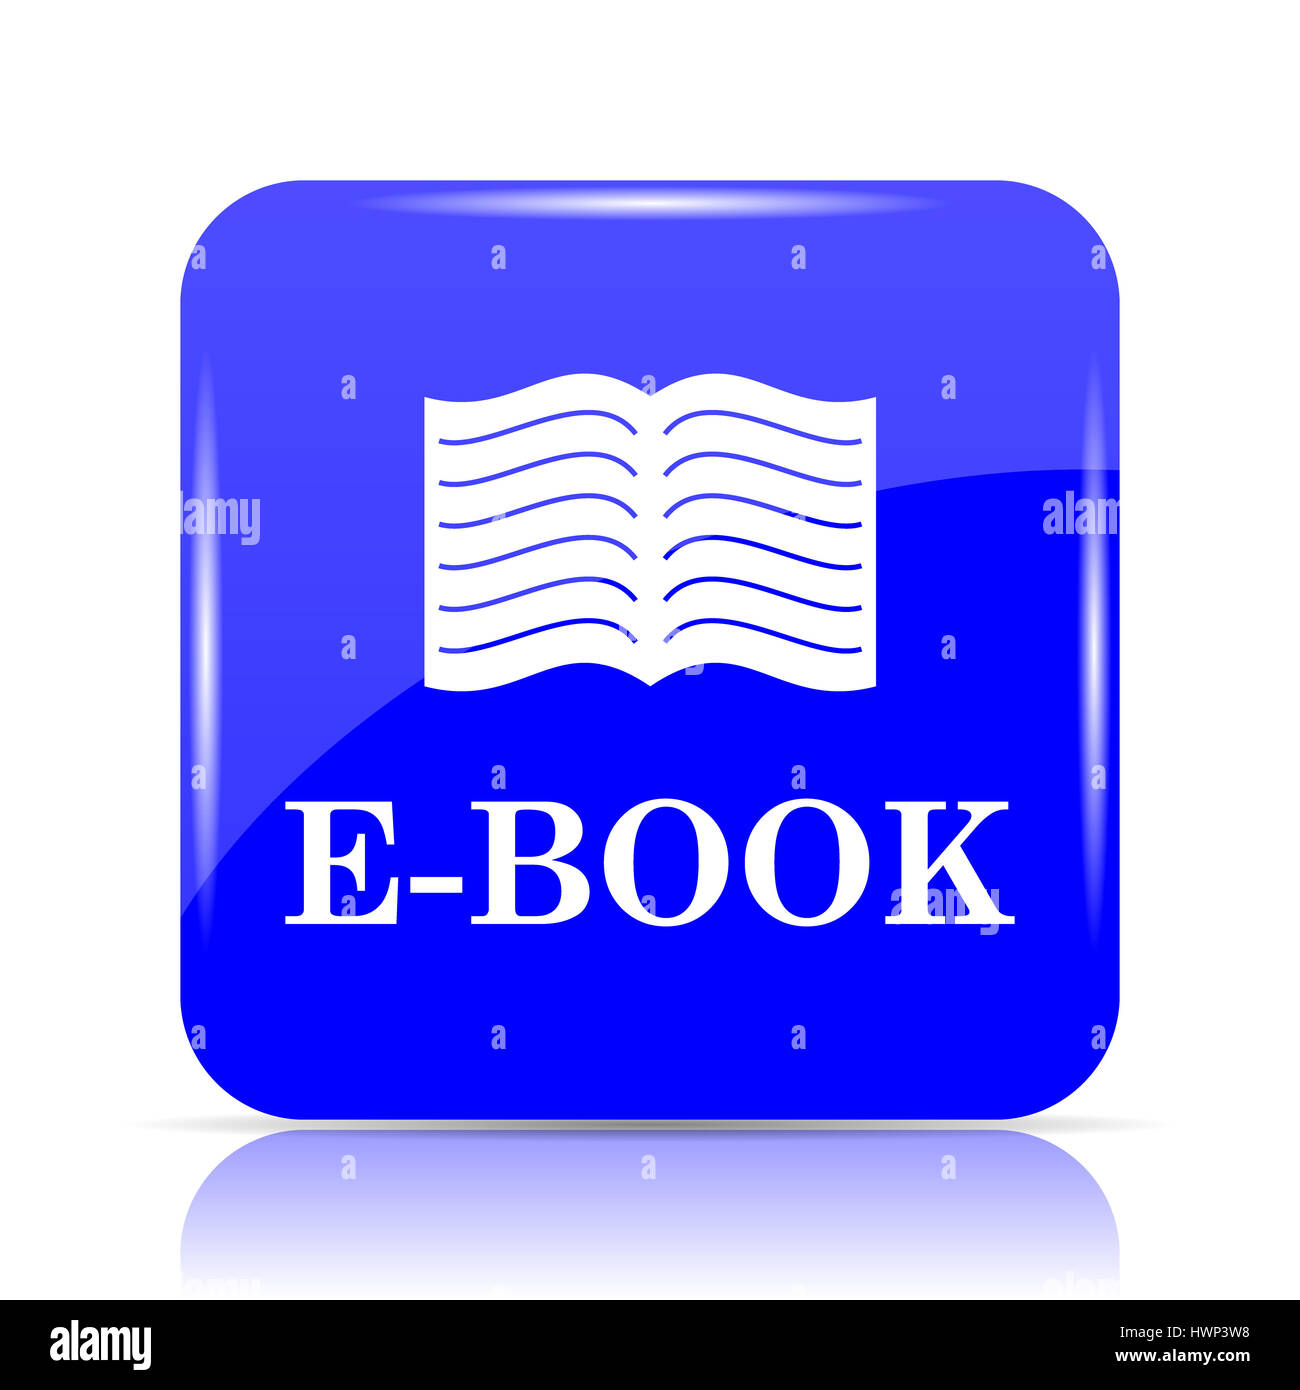 ICONS FOR WEBSITES E-BOOKS PDF DOWNLOAD